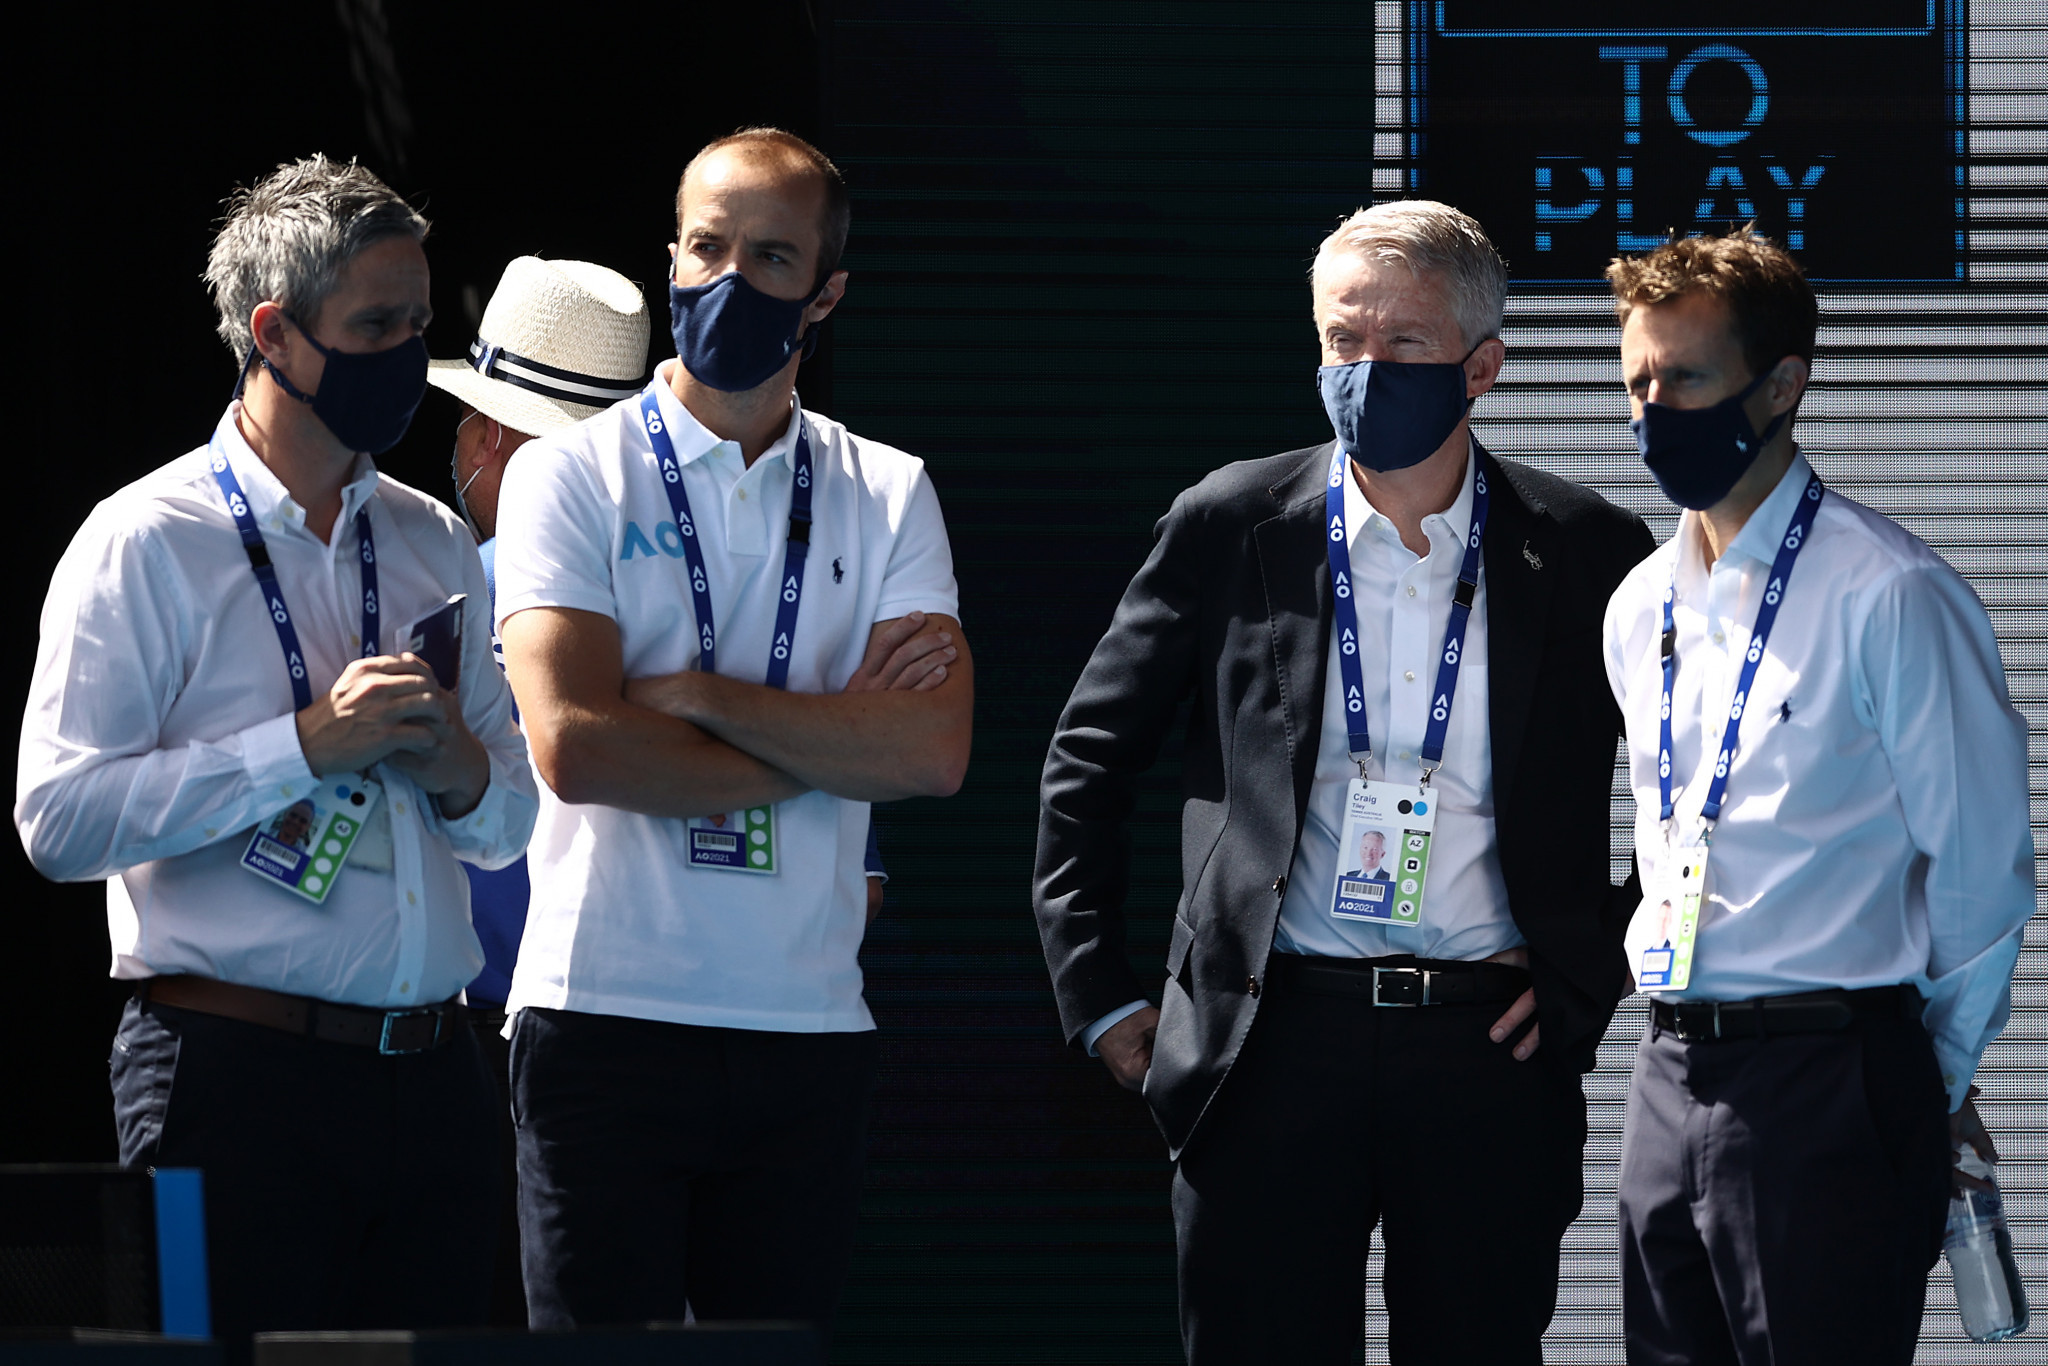 Tennis Australia chief executive Craig Tiley, second right, said he struggled to sleep during preparations for the Australian Open ©Getty Images